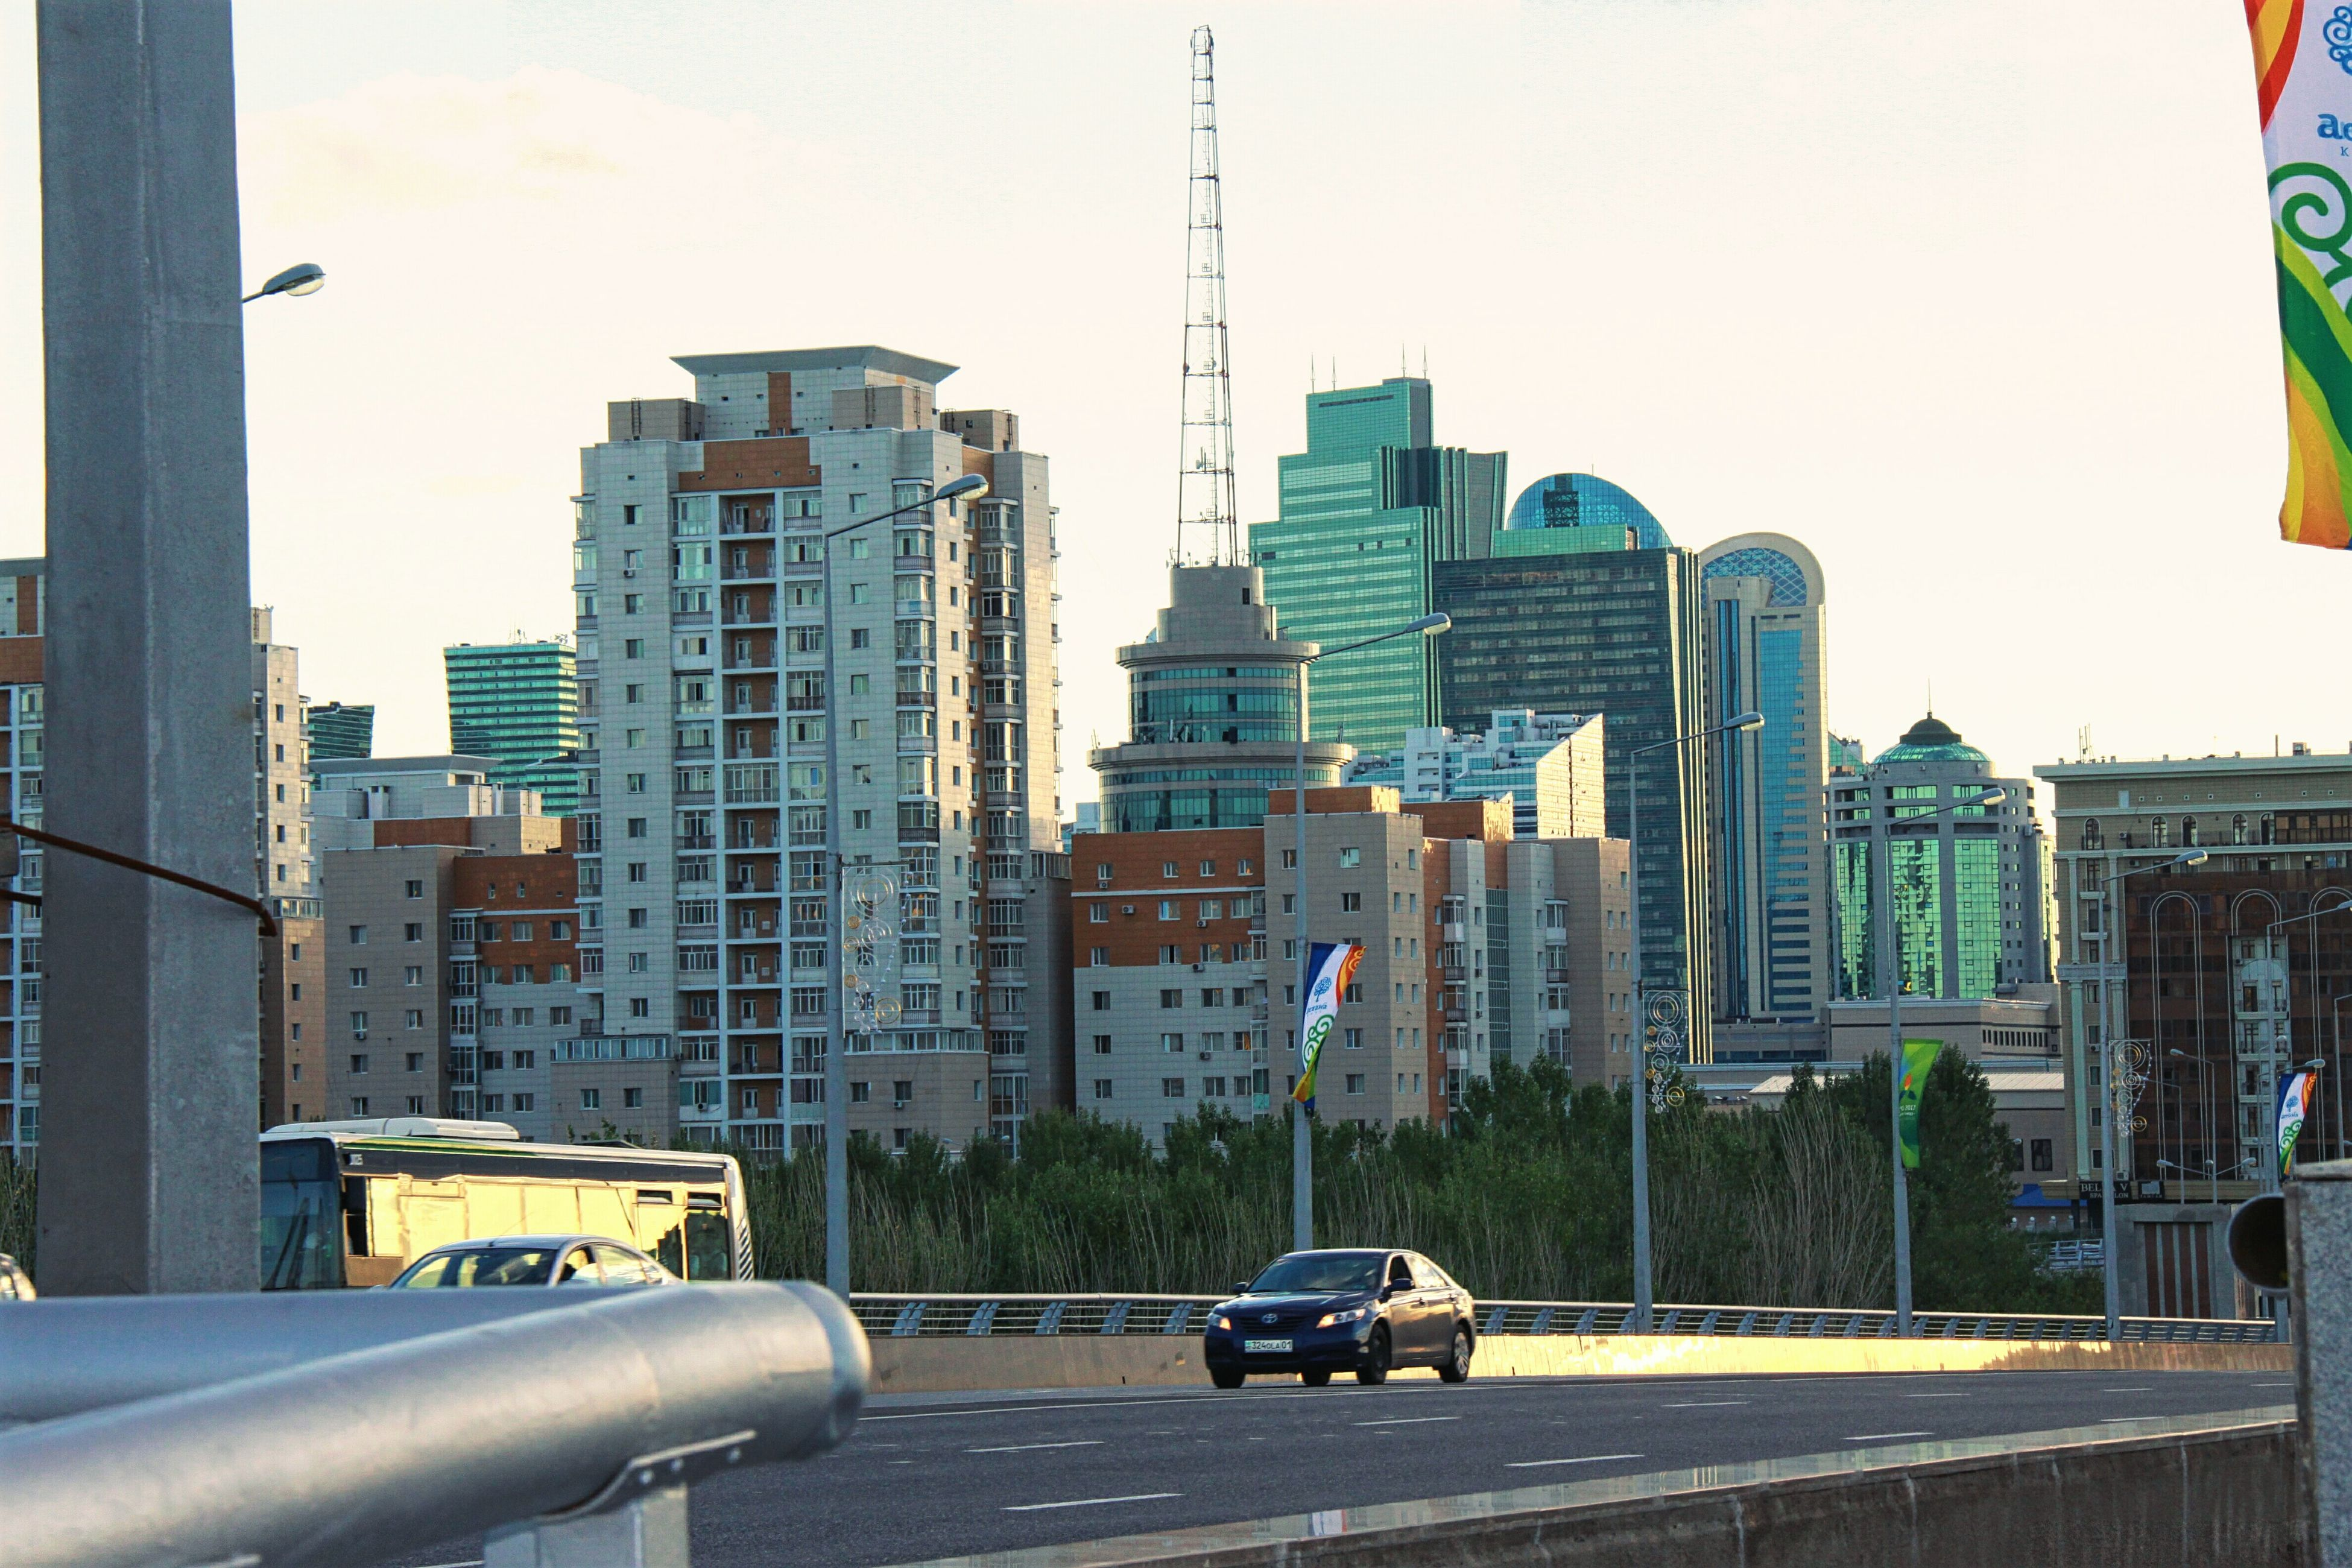 architecture, city, skyscraper, building exterior, built structure, modern, cityscape, transportation, tall, growth, road, no people, day, outdoors, sky